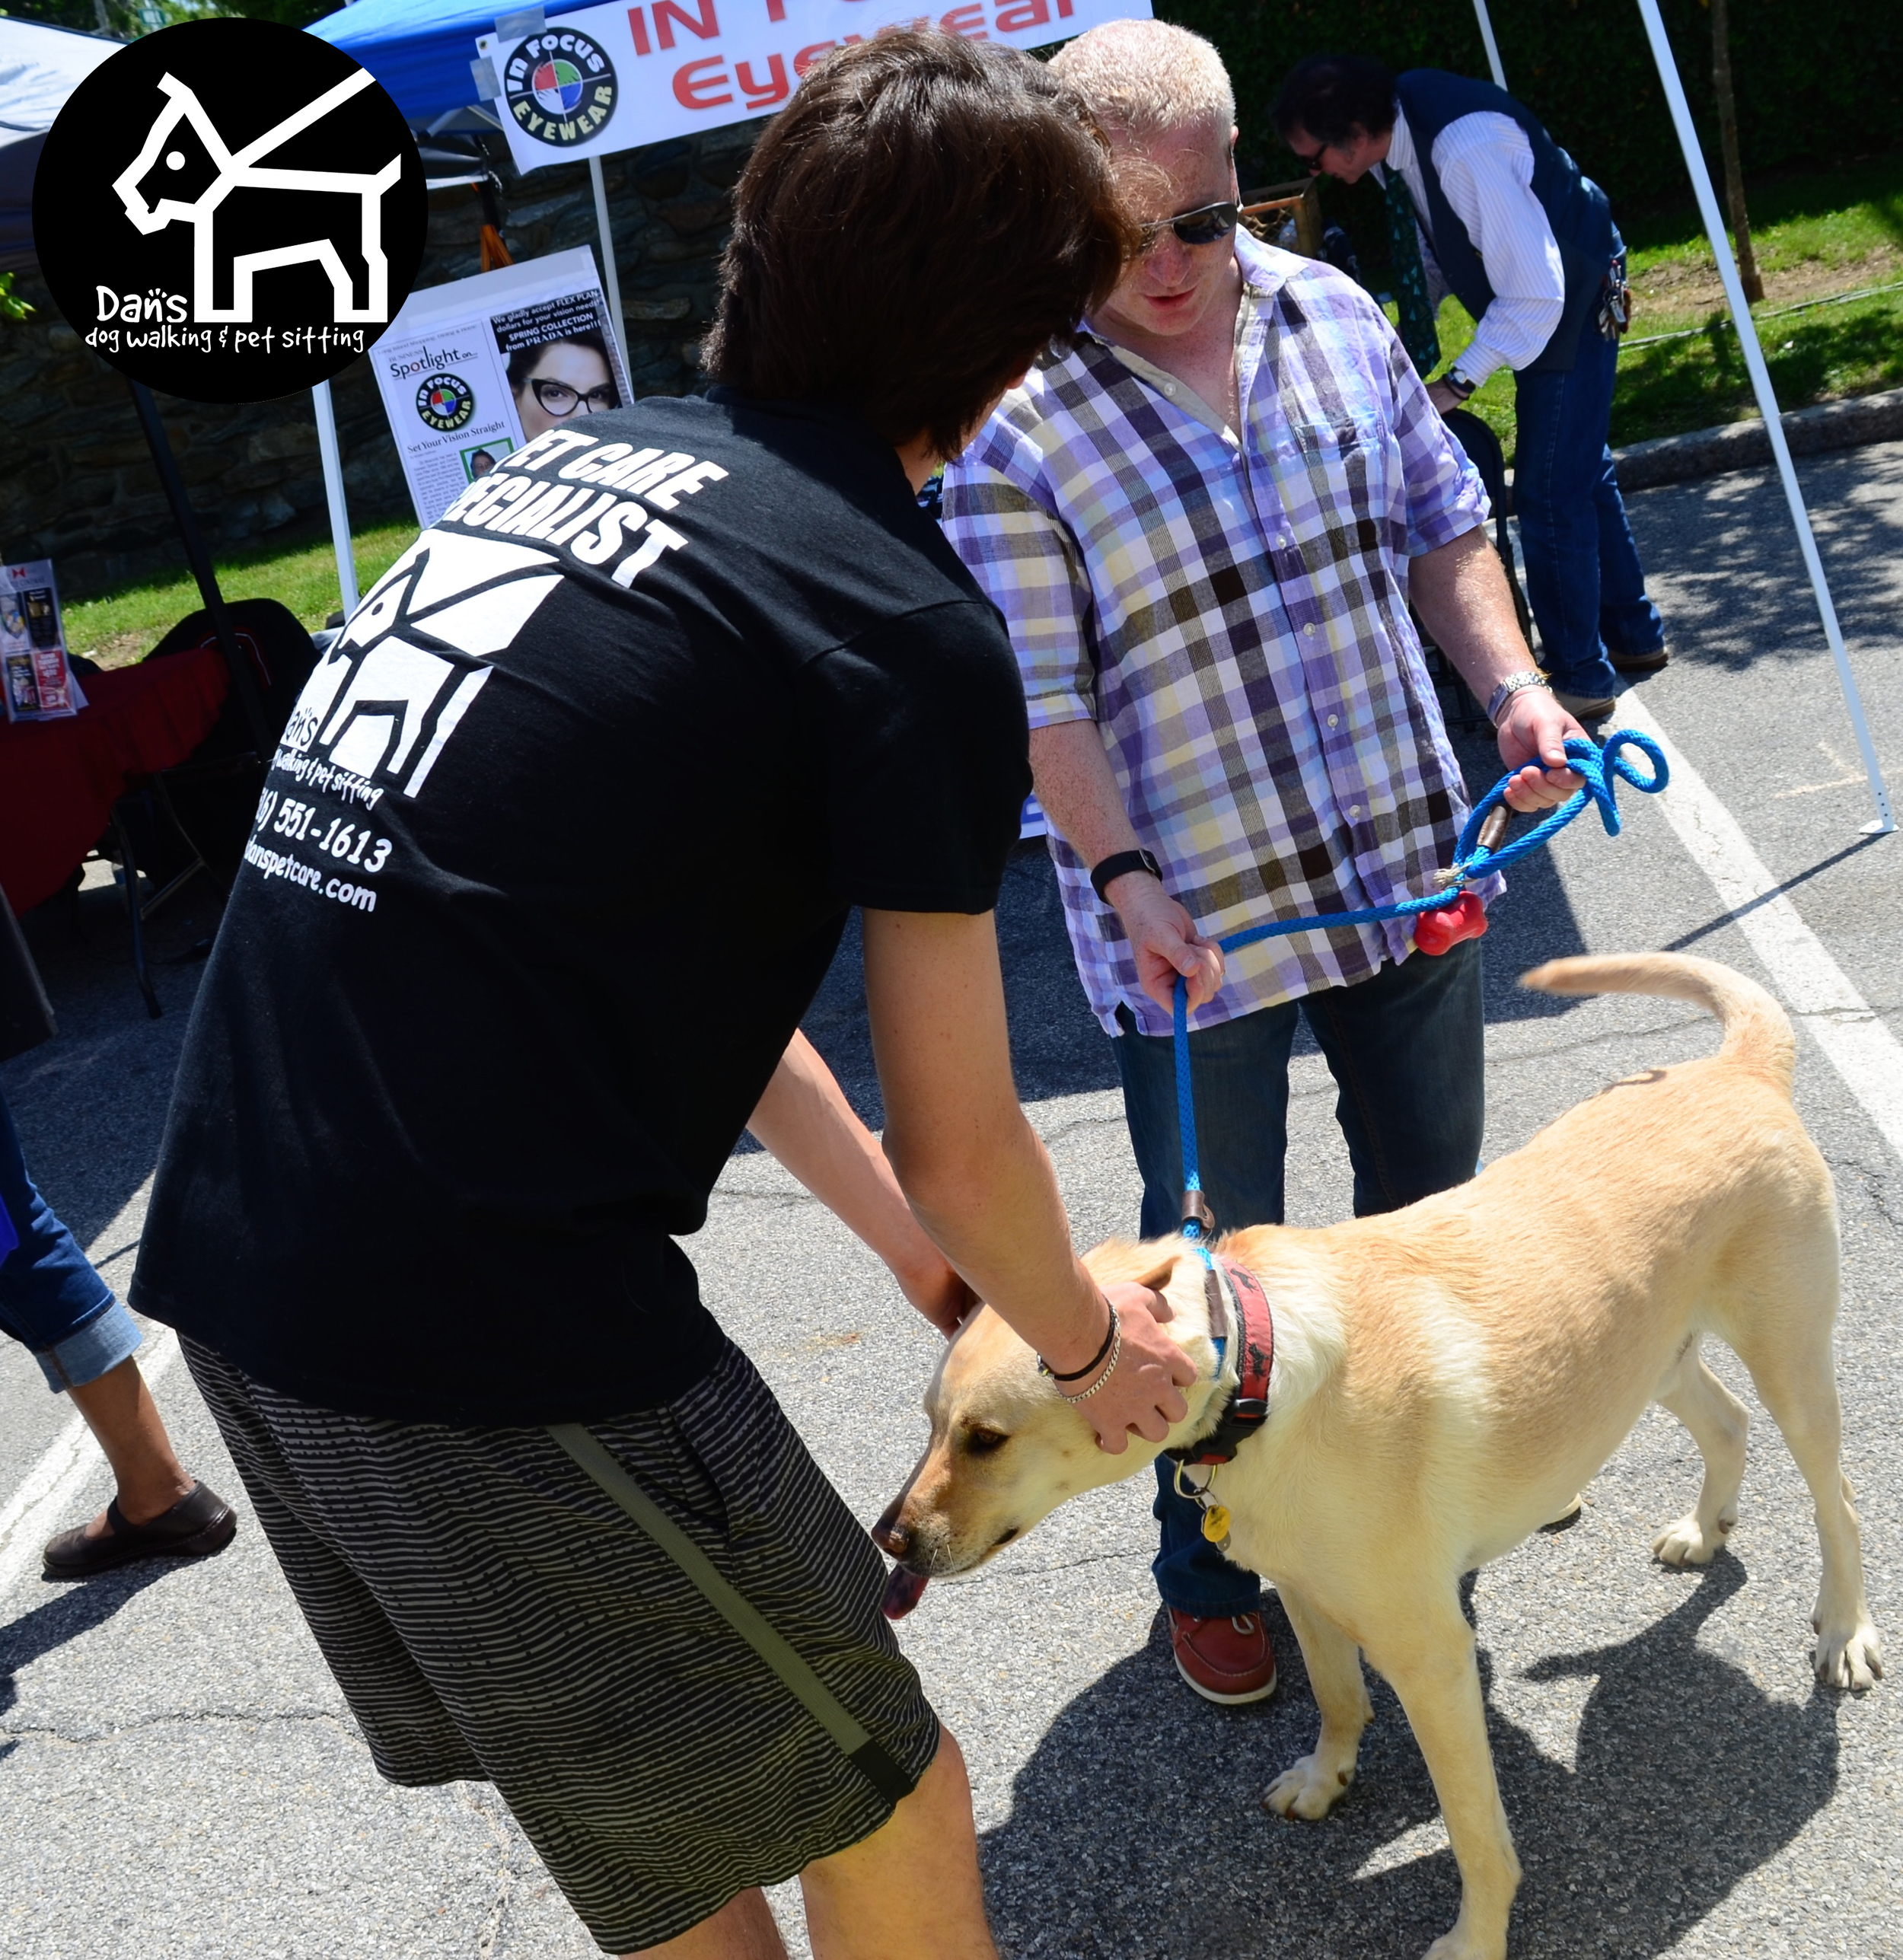 Making new friends at Dan's Dog Walking and Pet Sitting Doggie Photo Booth at Harbor Fest 2015.jpg